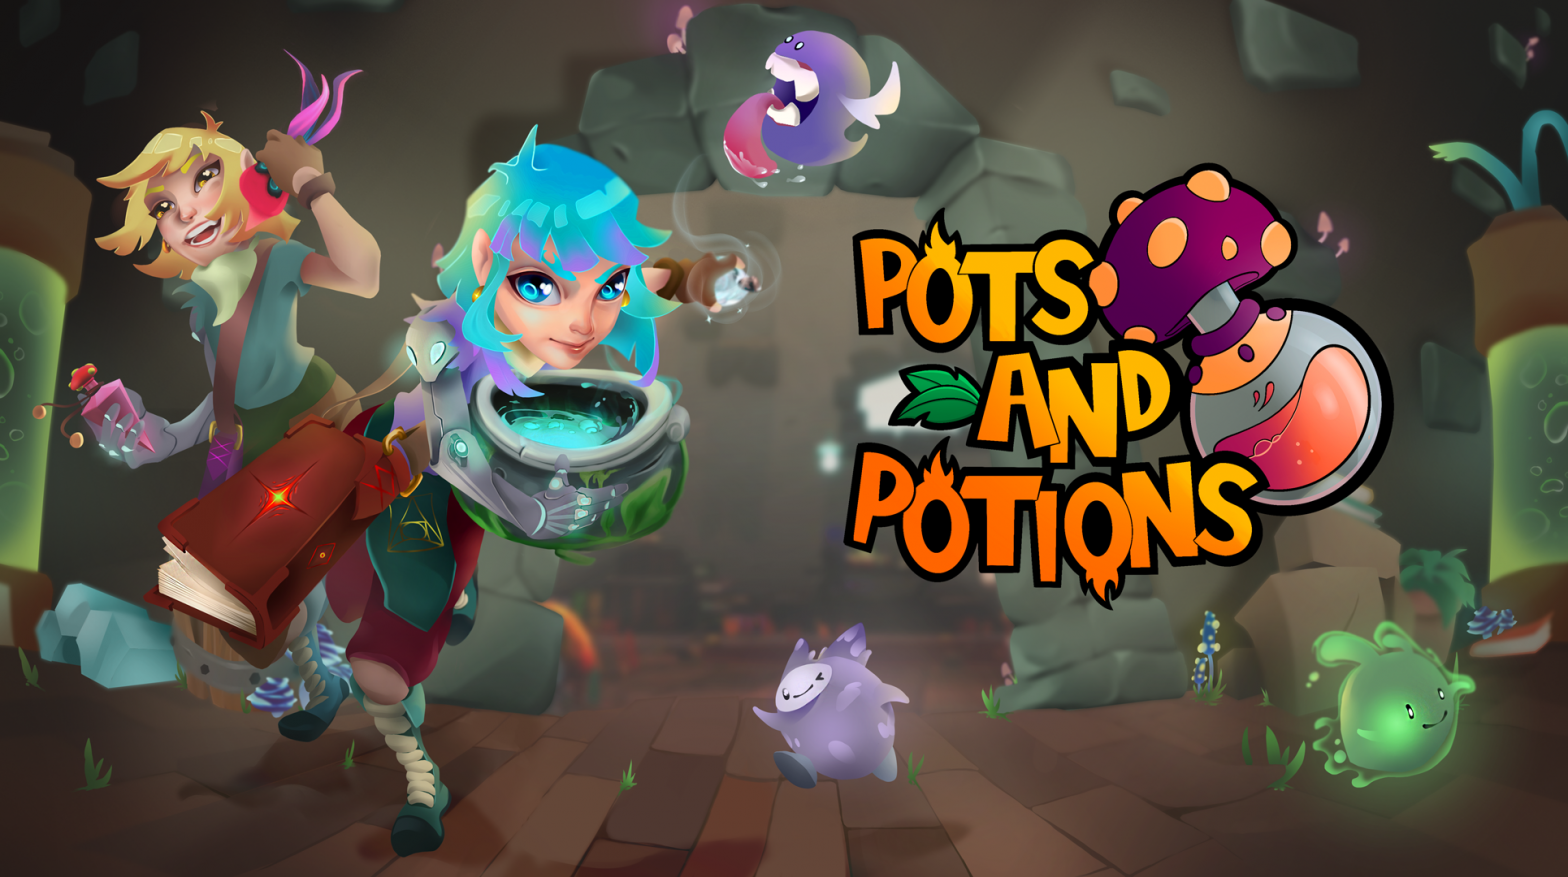 Video game Pots and Potions art